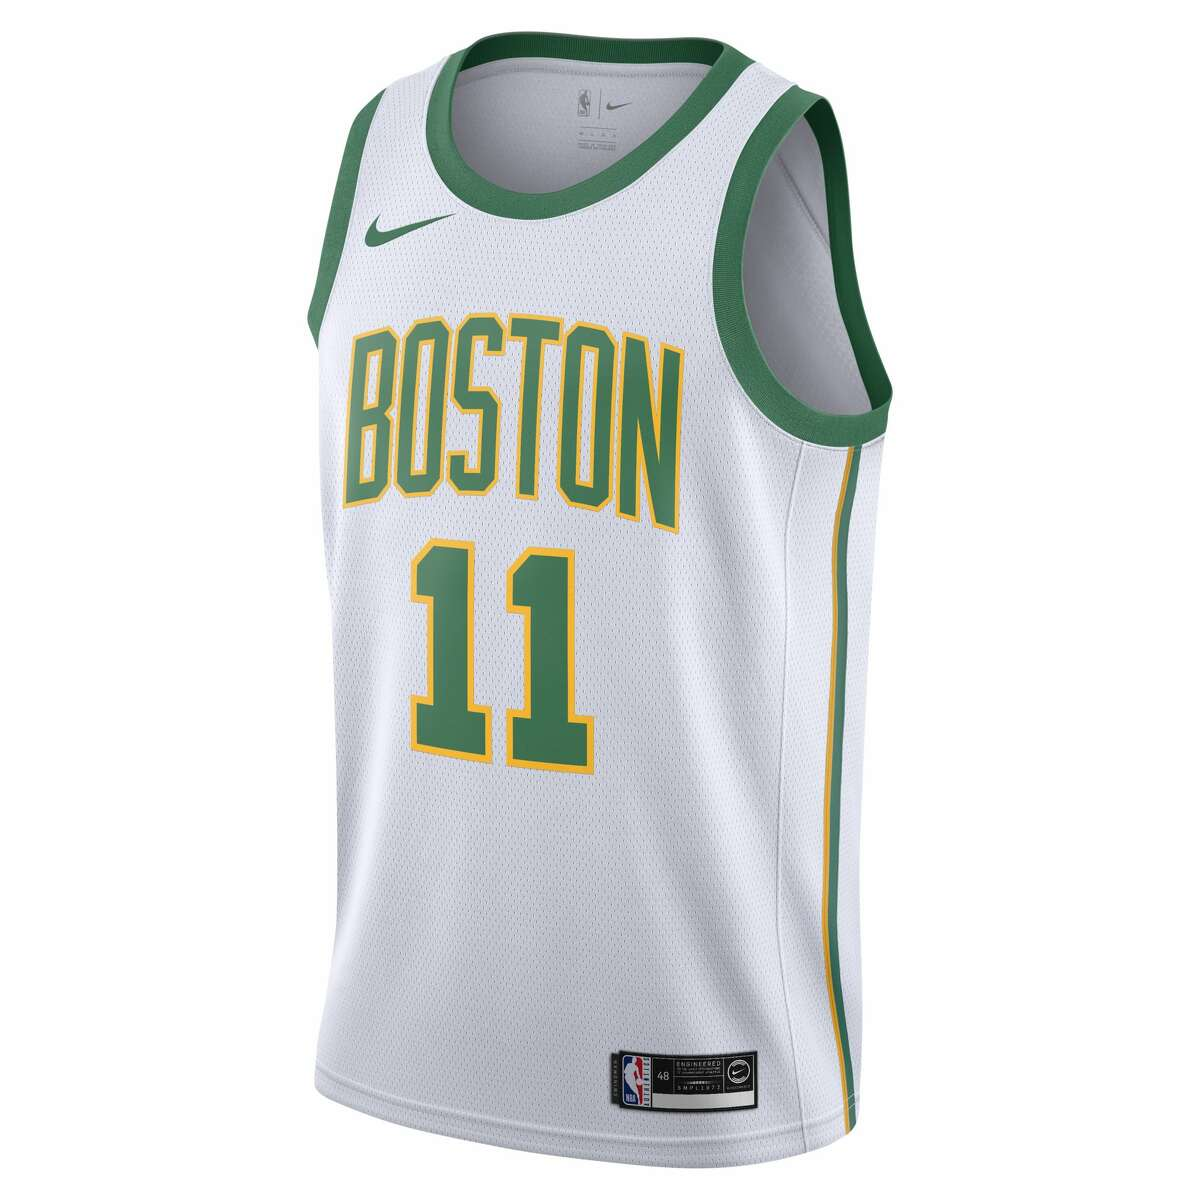 The Boston Celtics' NBA City Edition jersey for the 2018-19 season.